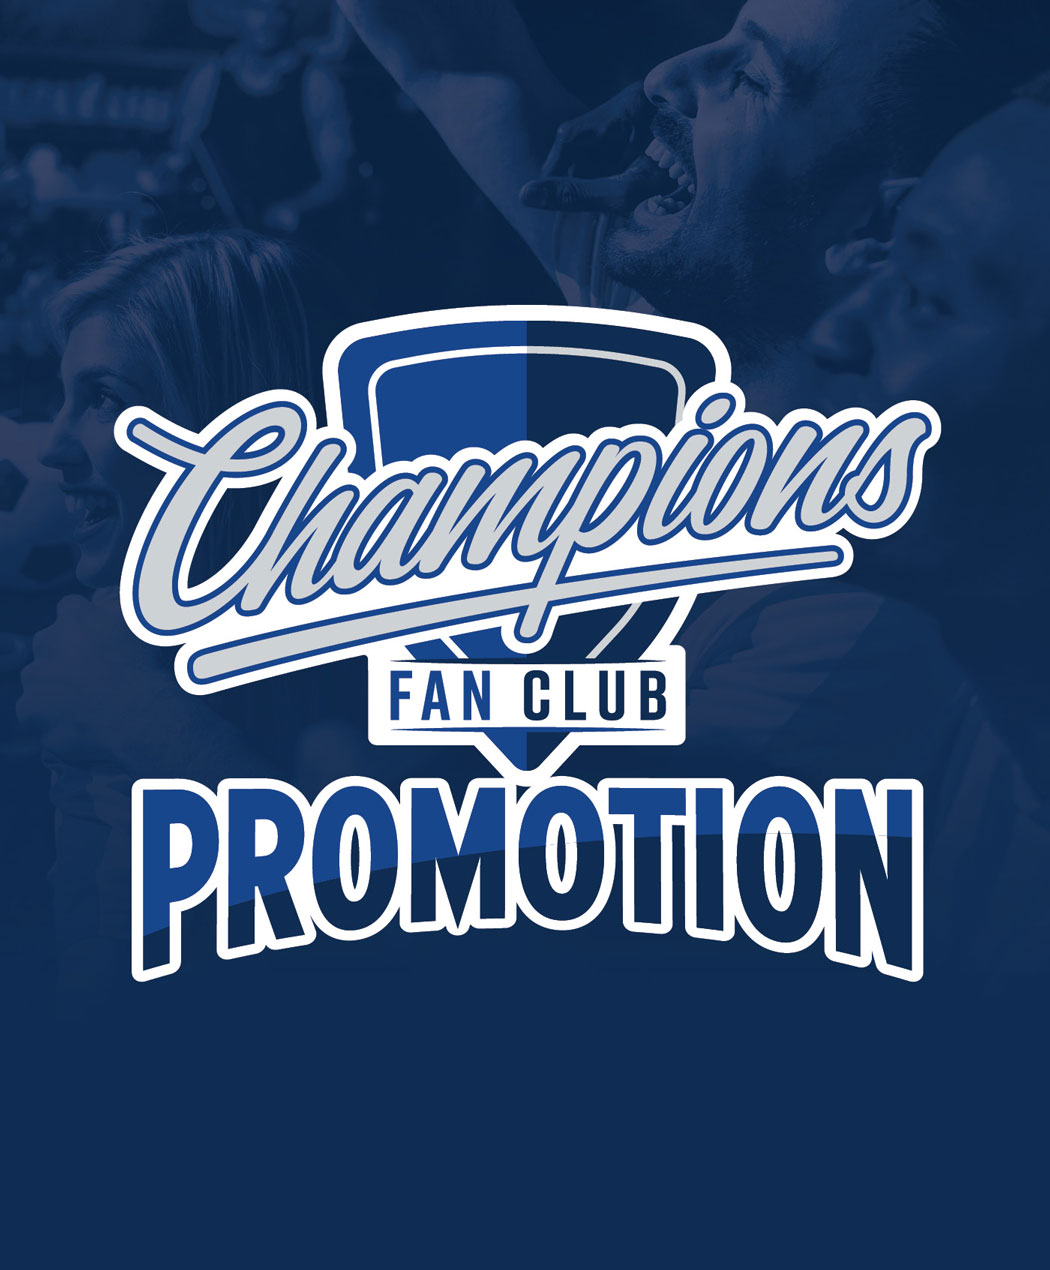 Champions Fan Club Promotion